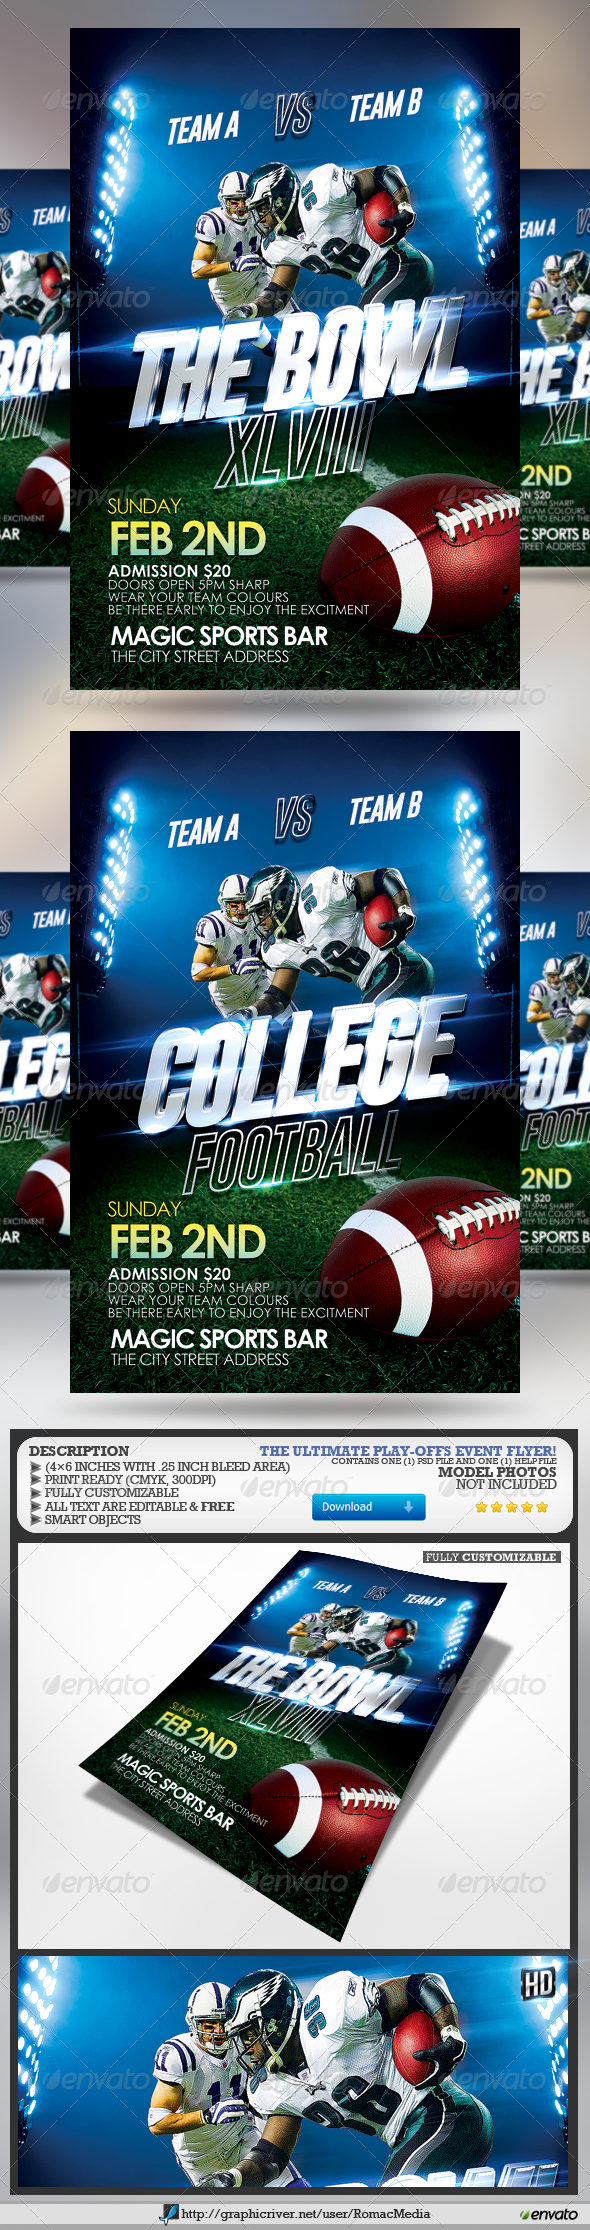 The Bowl and College Football Flyer